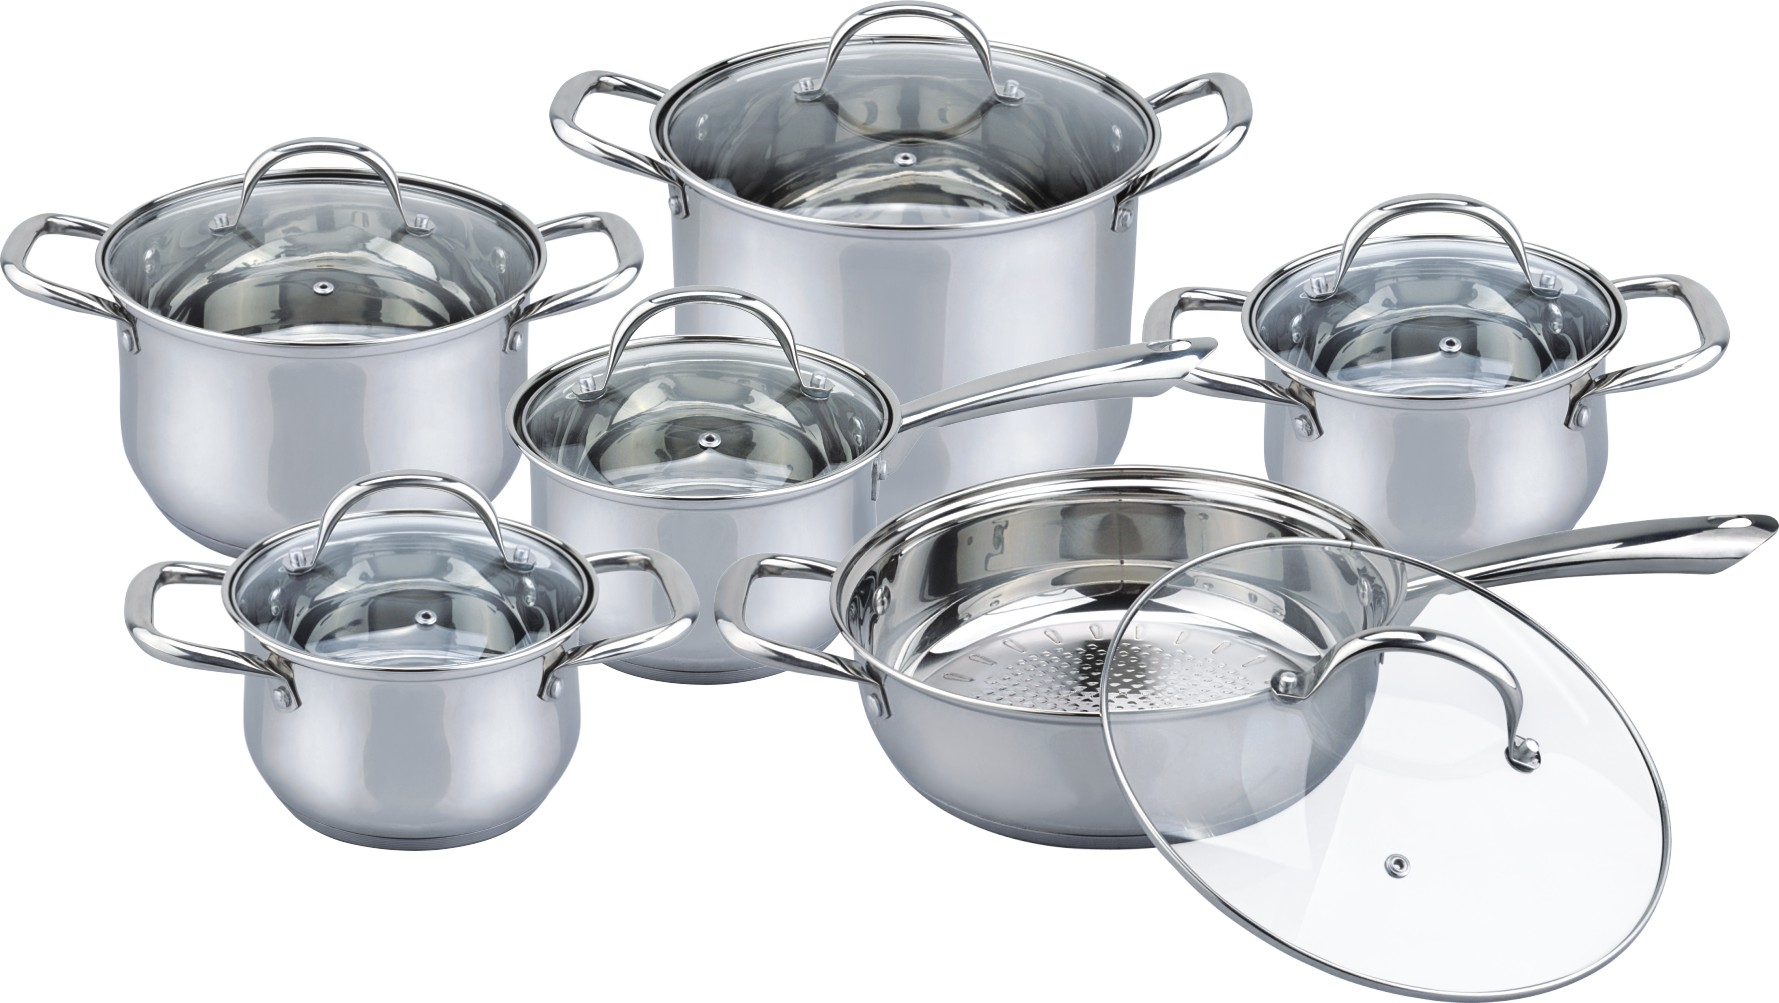 12pcs big handle & knob cookwar set